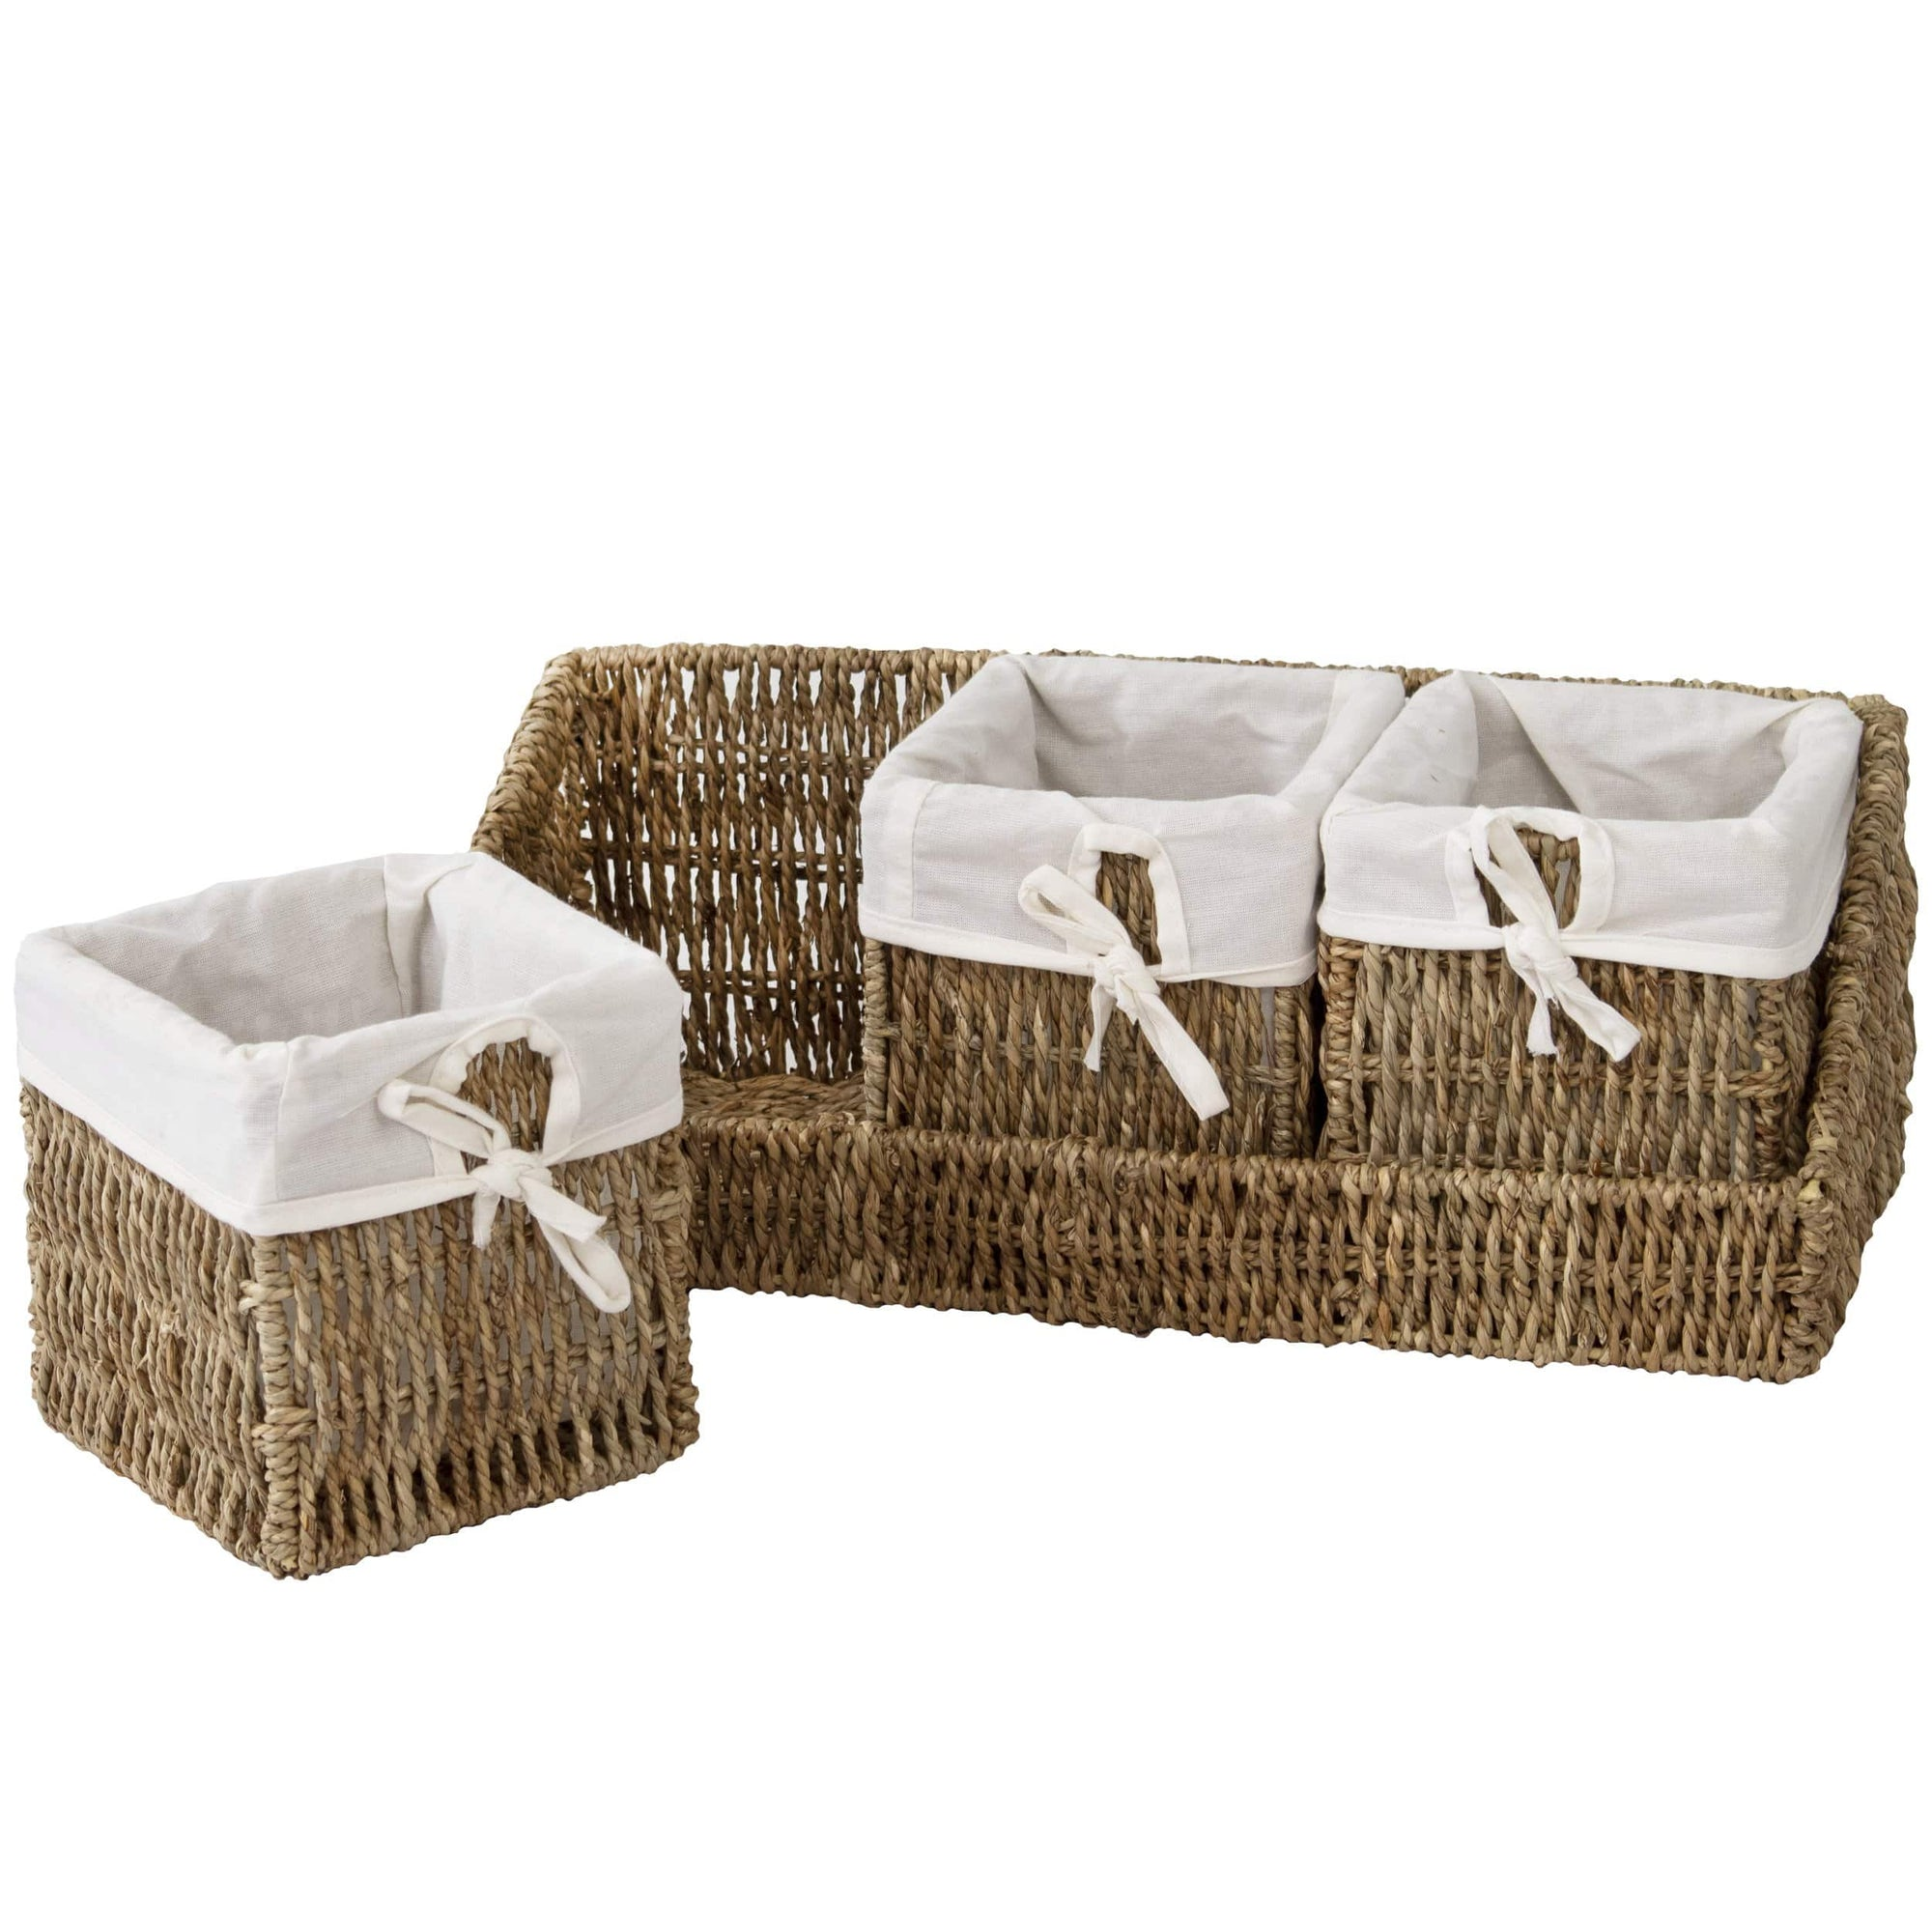 madeterra.uk Storage basket Natural Wall-mount Wicker Shelf w 3 Storage Baskets | Tray and Removable Liners, Nesting Wall Organisation Container